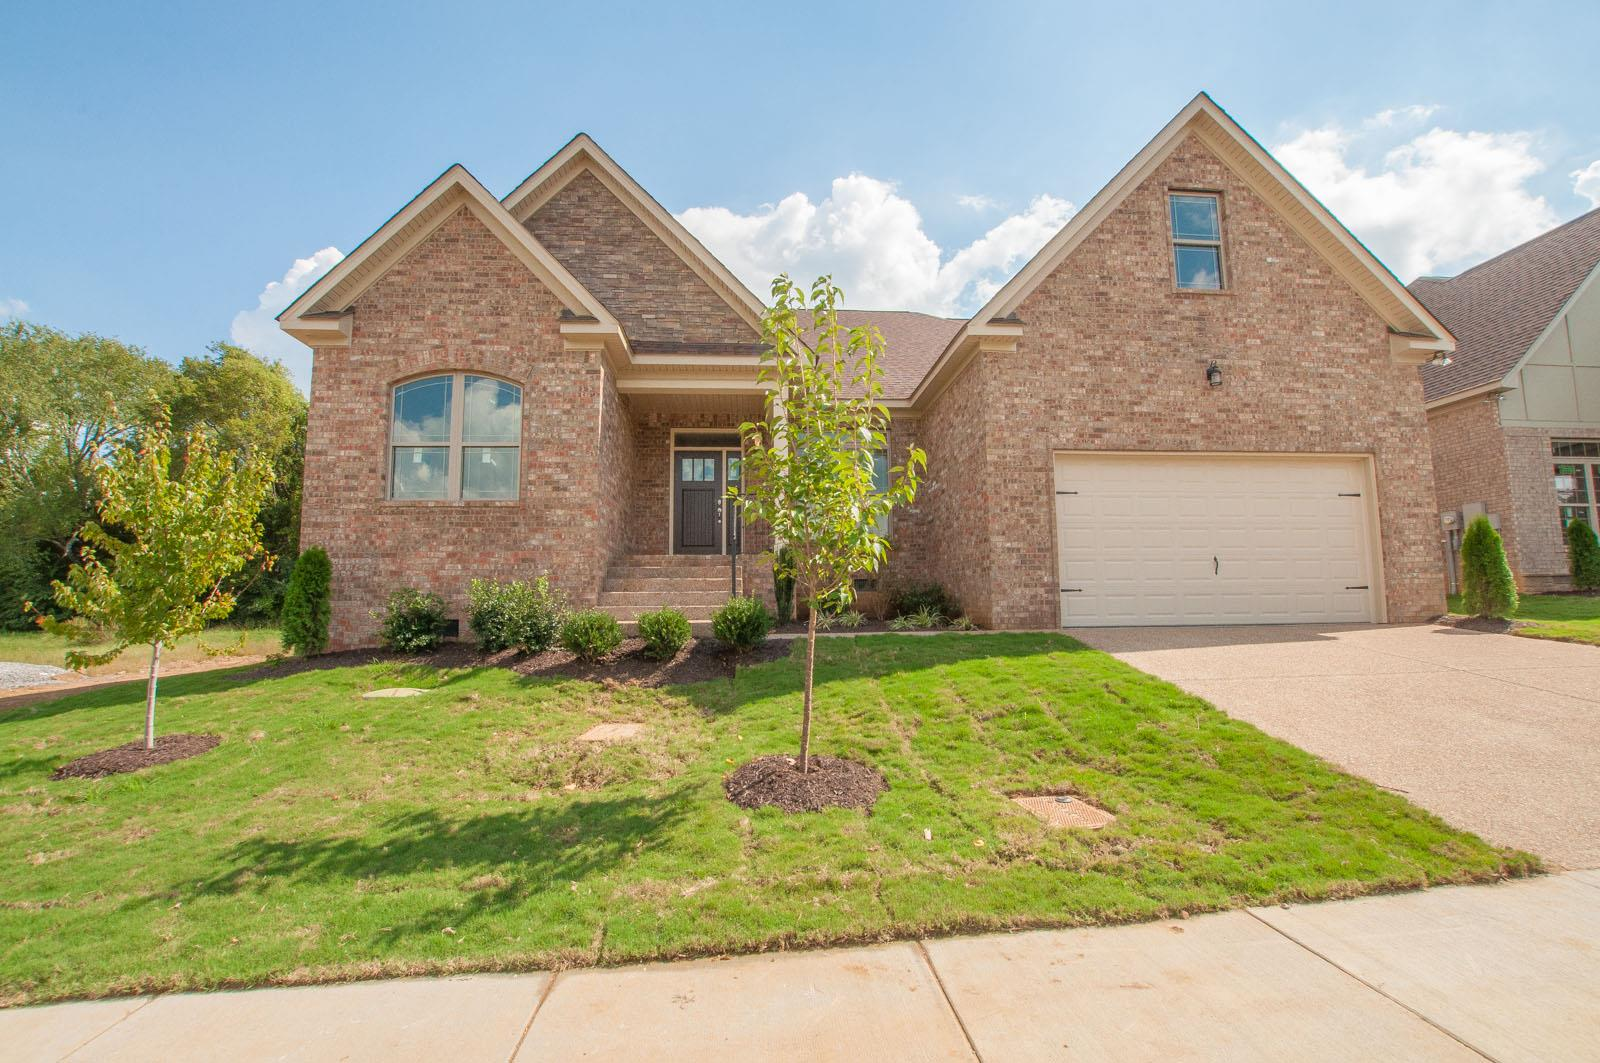 7221 RISING FAWN TRAIL 37076 - One of Hermitage Homes for Sale